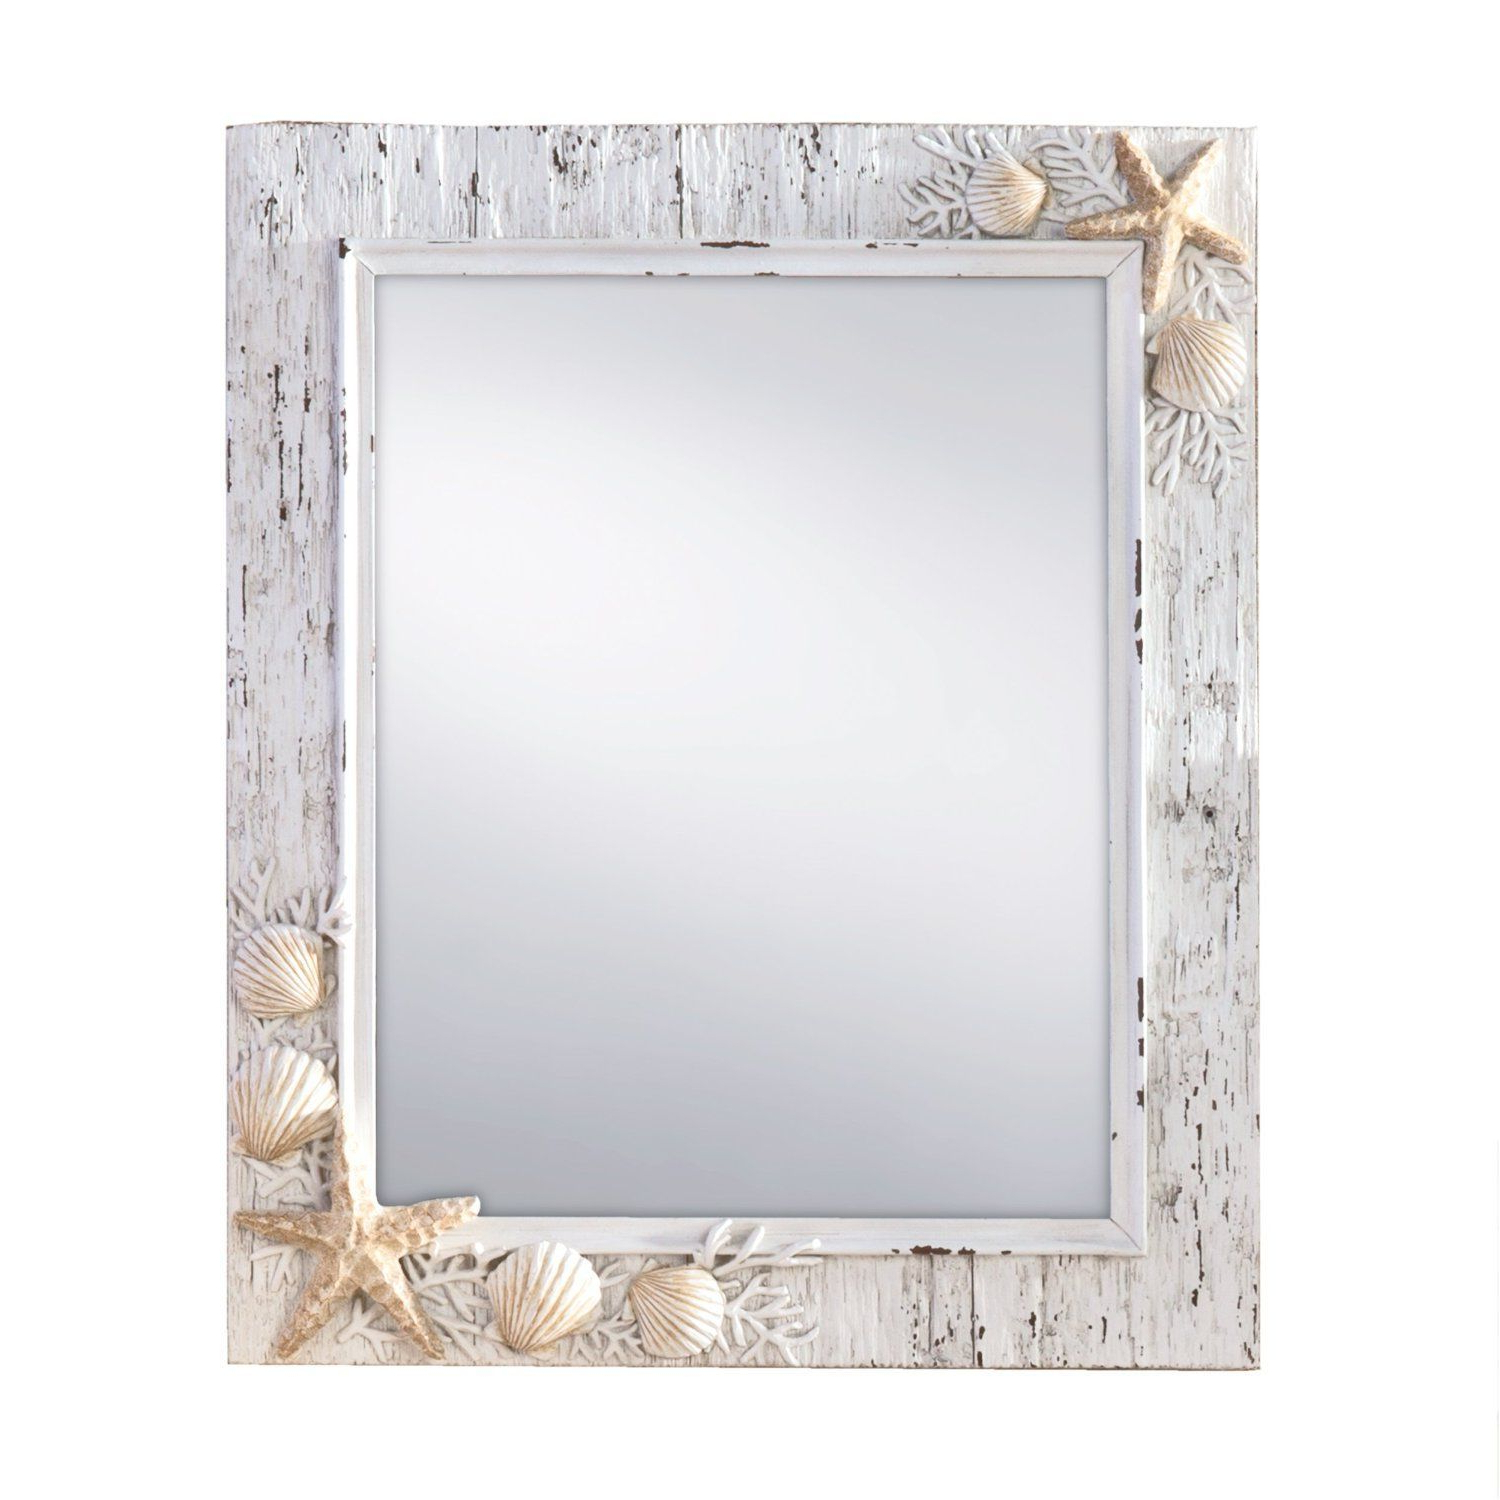 Widely Used Beach Themed Mirrors! Discover The Best Beach Mirrors For Your Wall Inside Hussain Tile Accent Wall Mirrors (Gallery 11 of 20)